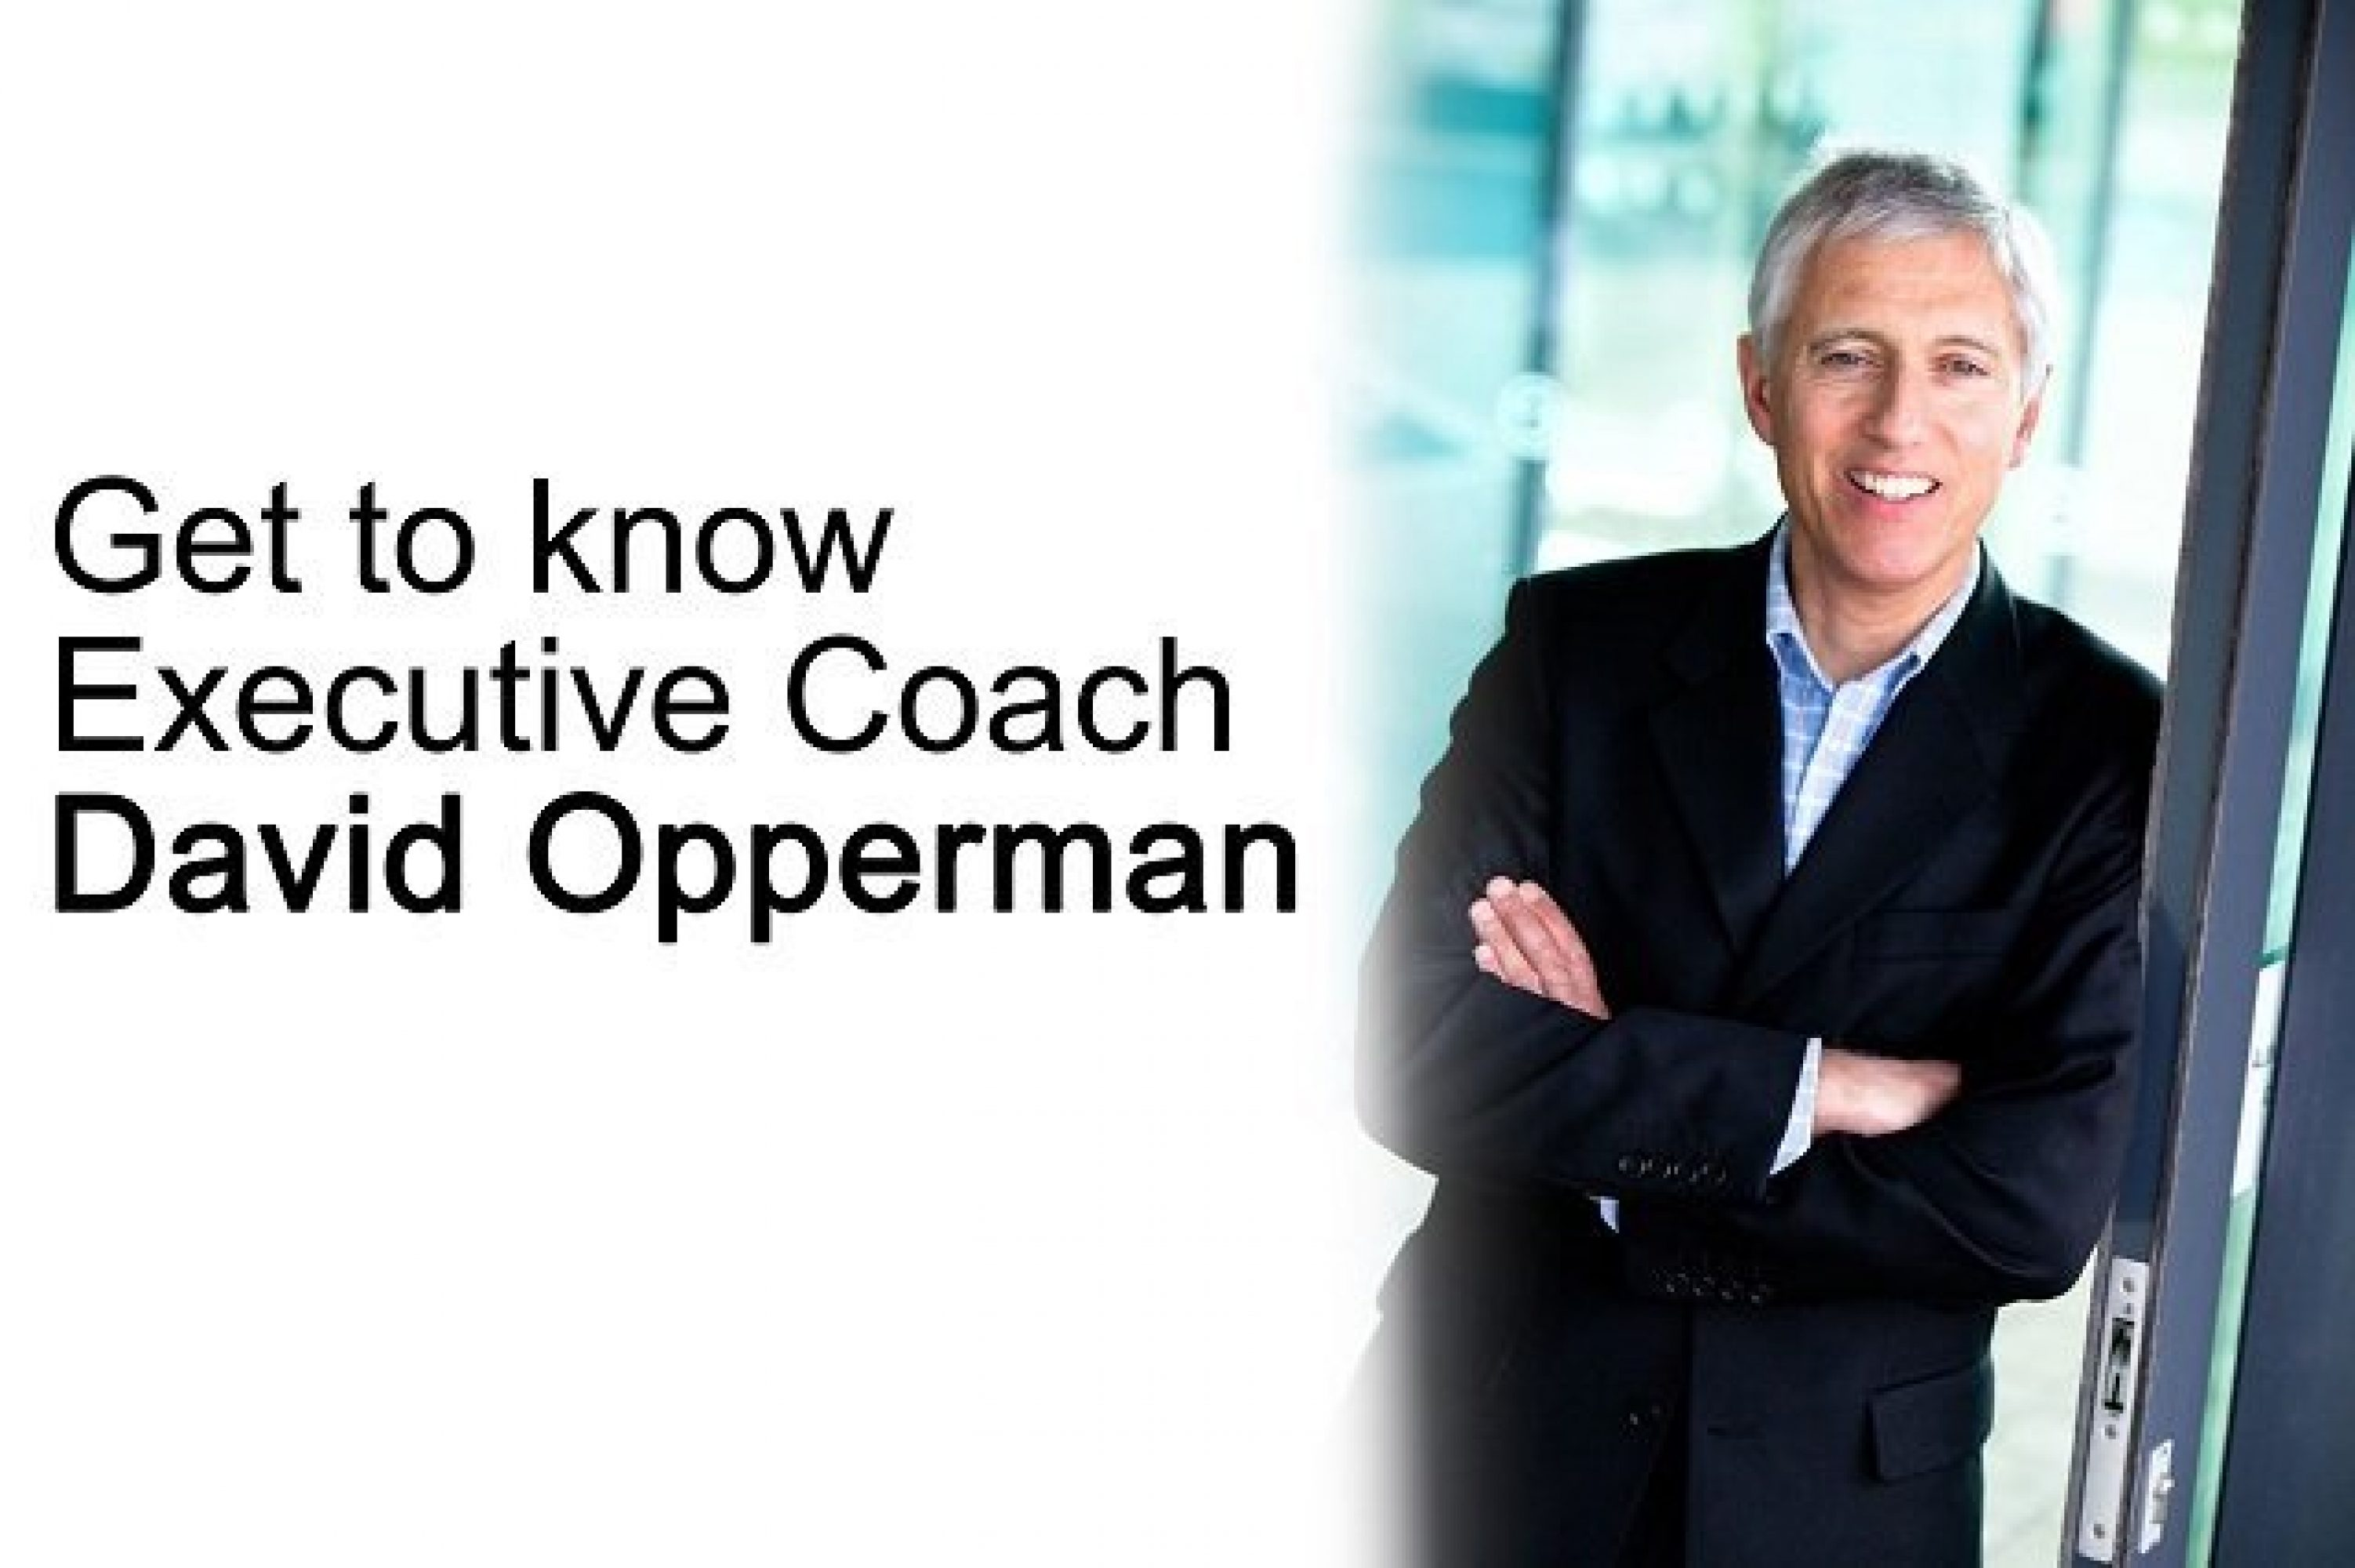 get to know executive coach david opperman